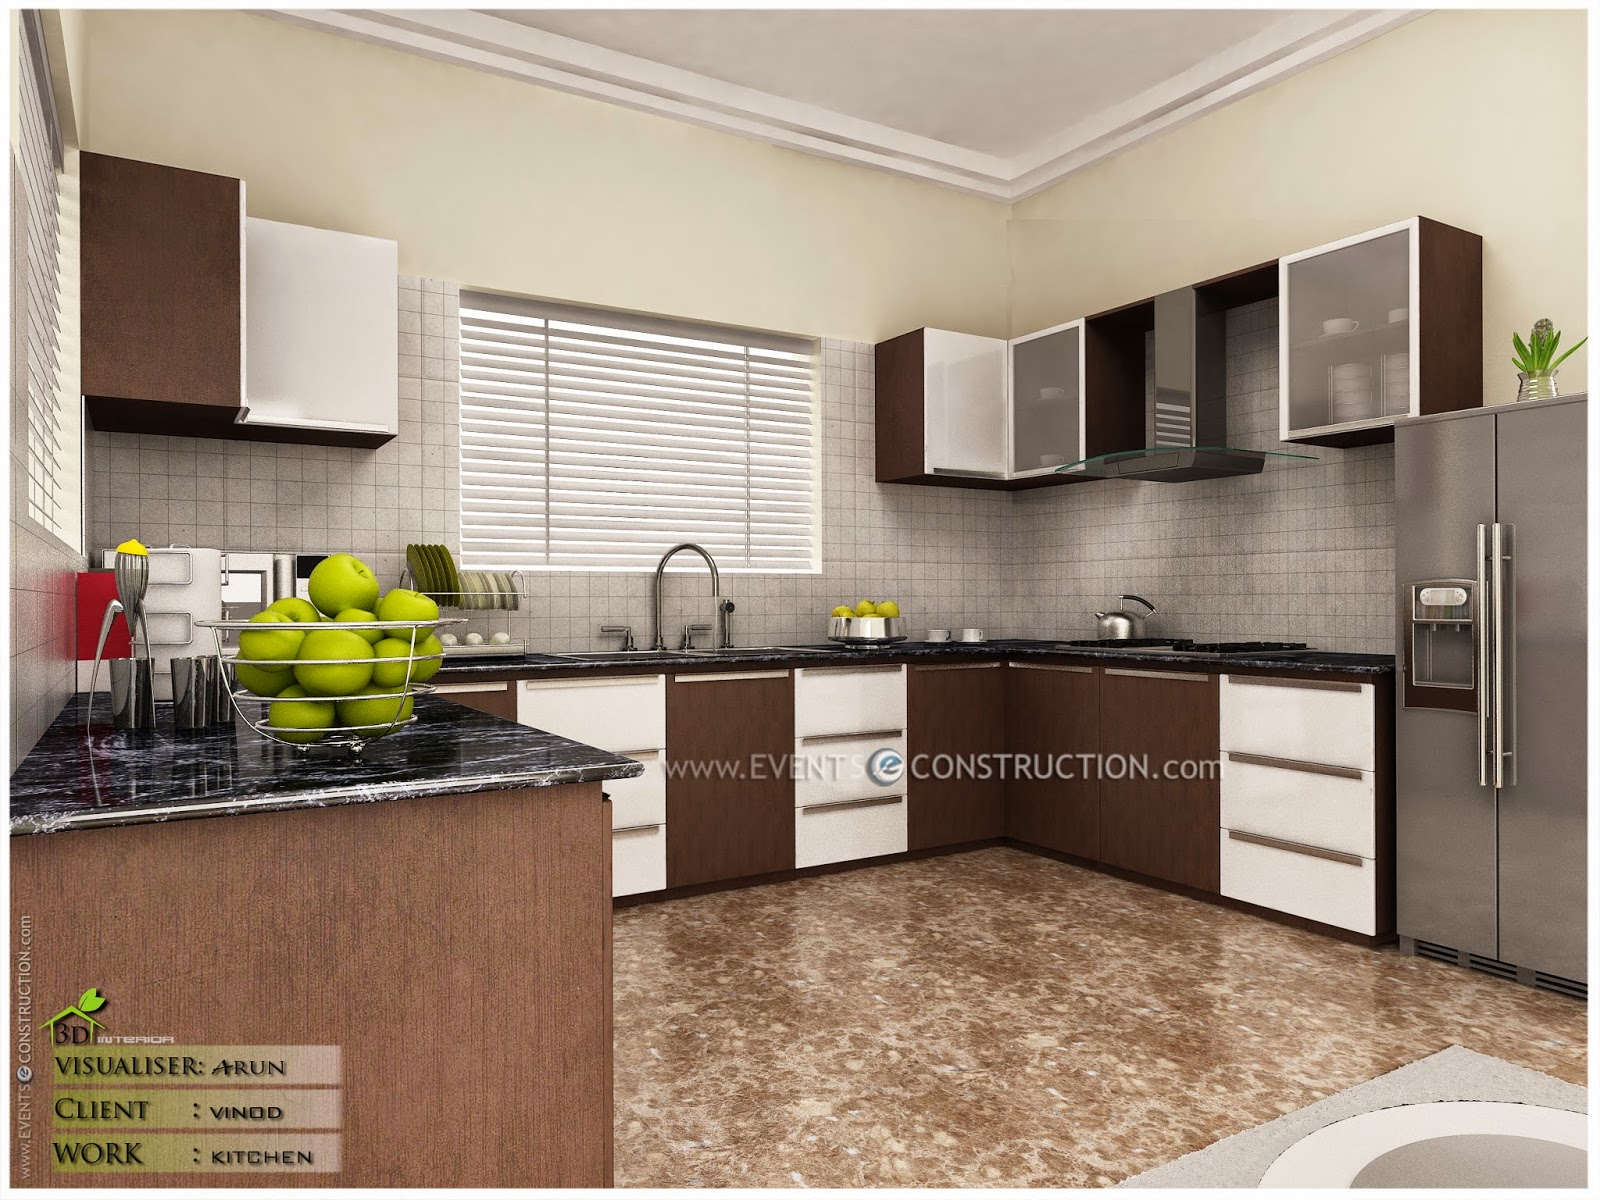 wonderful modern kitchen kerala style rendering concept of - Bathroom Design Ideas In Kerala